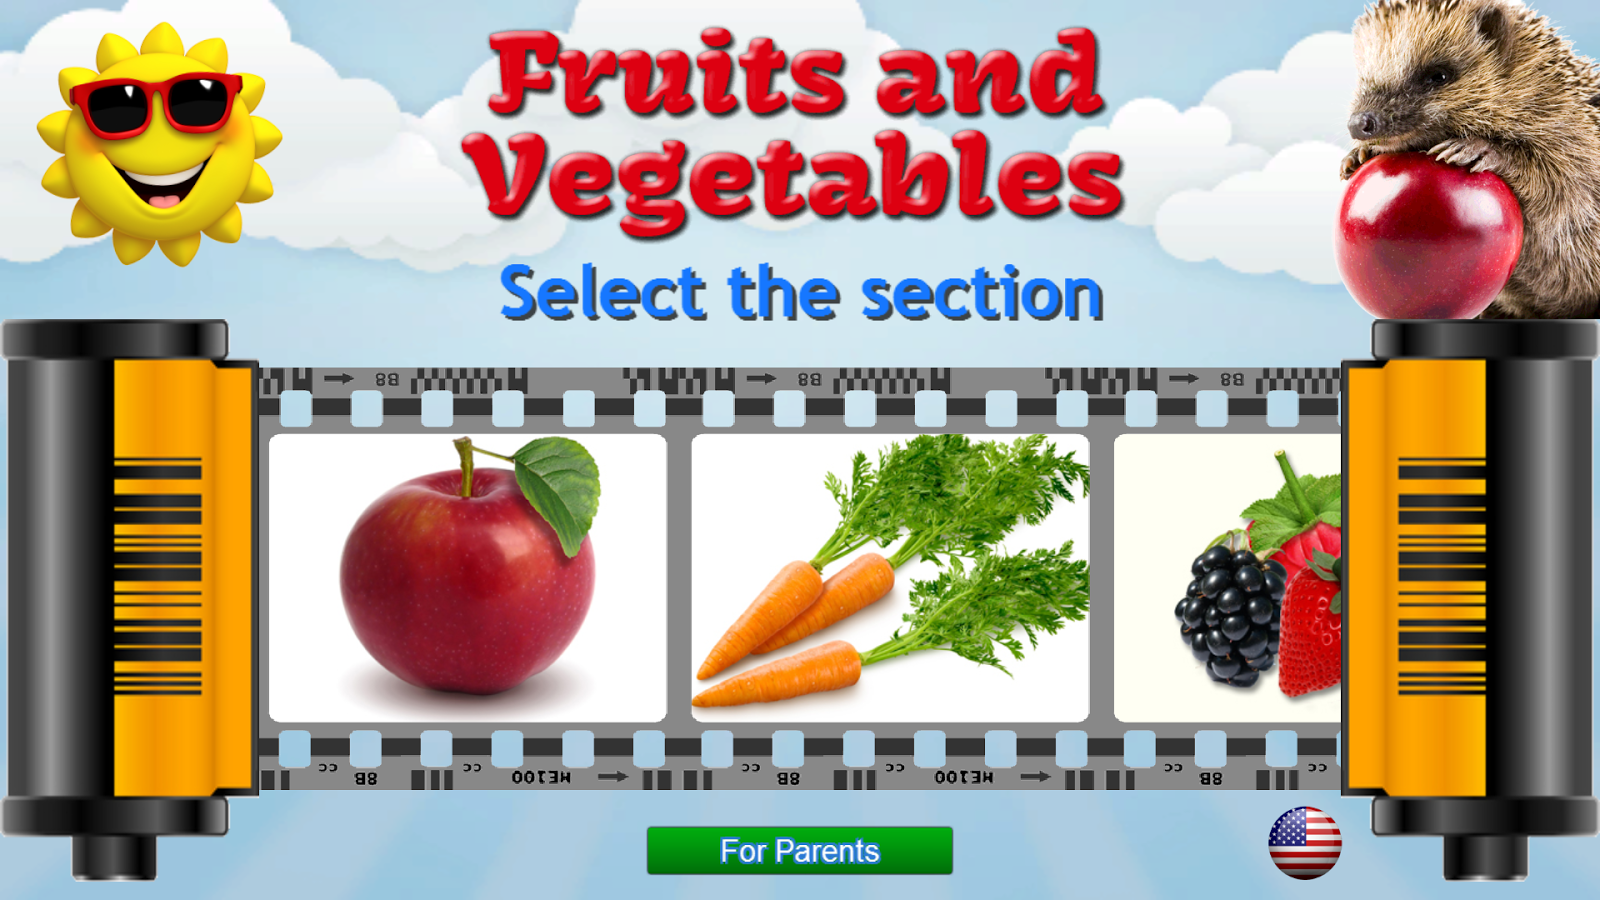 Fruits and vegetables for kids 66 apk download android fruits and vegetables for kids 66 screenshot 11 nvjuhfo Image collections